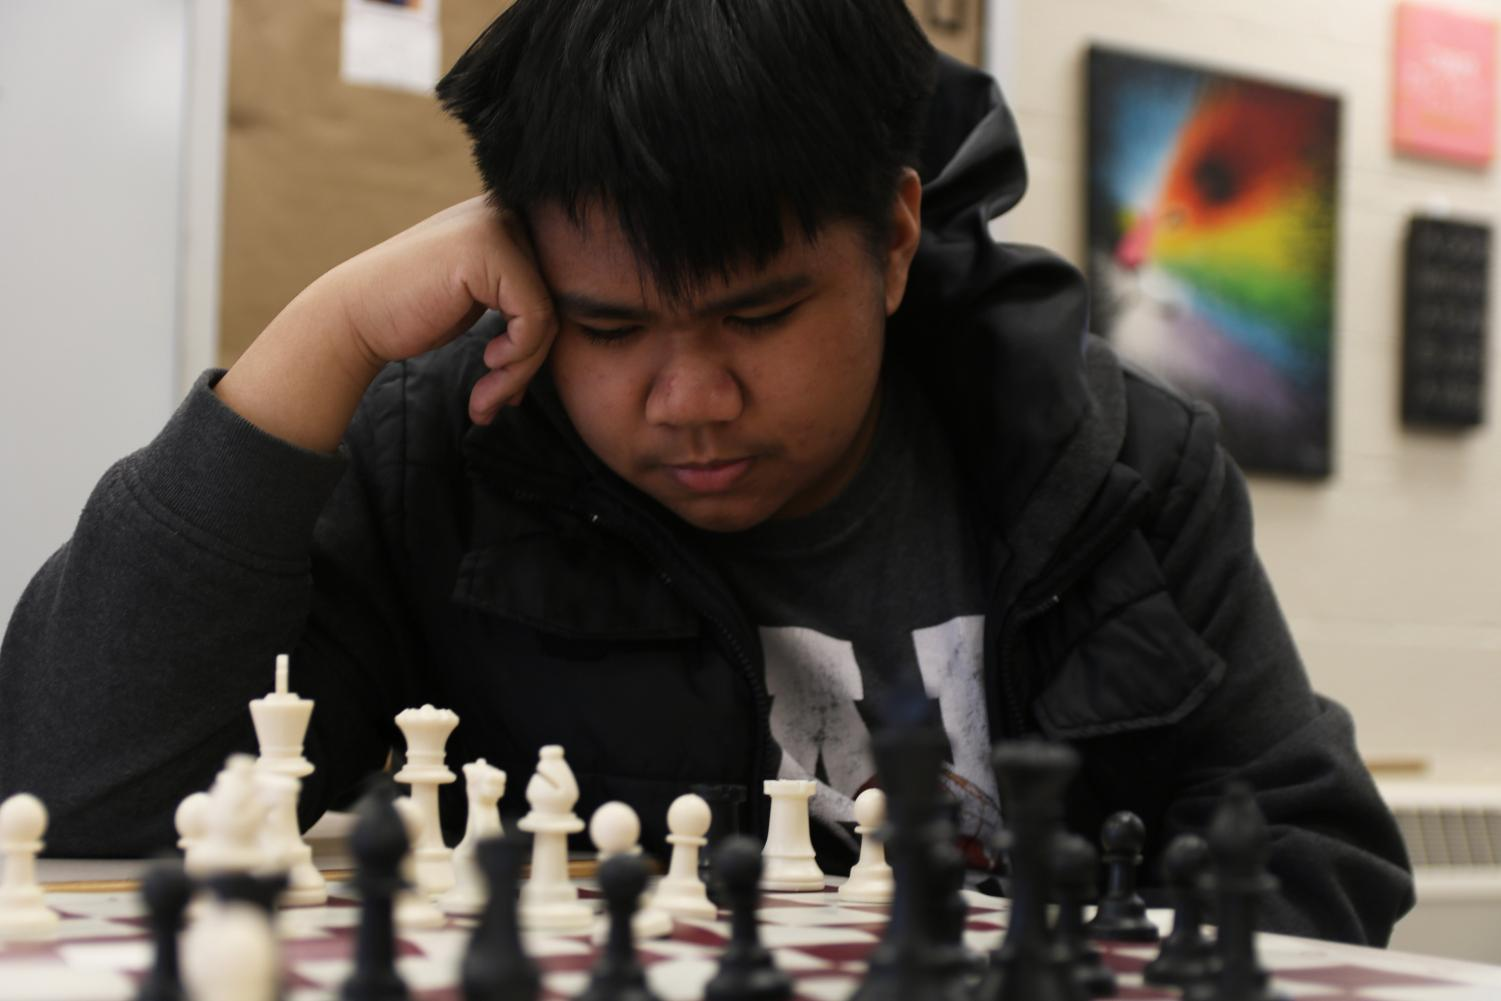 Contemplating+his+next+move%2C+Ron+Almira%2C+junior%2C+focusses+on+the+chess+pieces+at+chess+club+Jan.+24.+